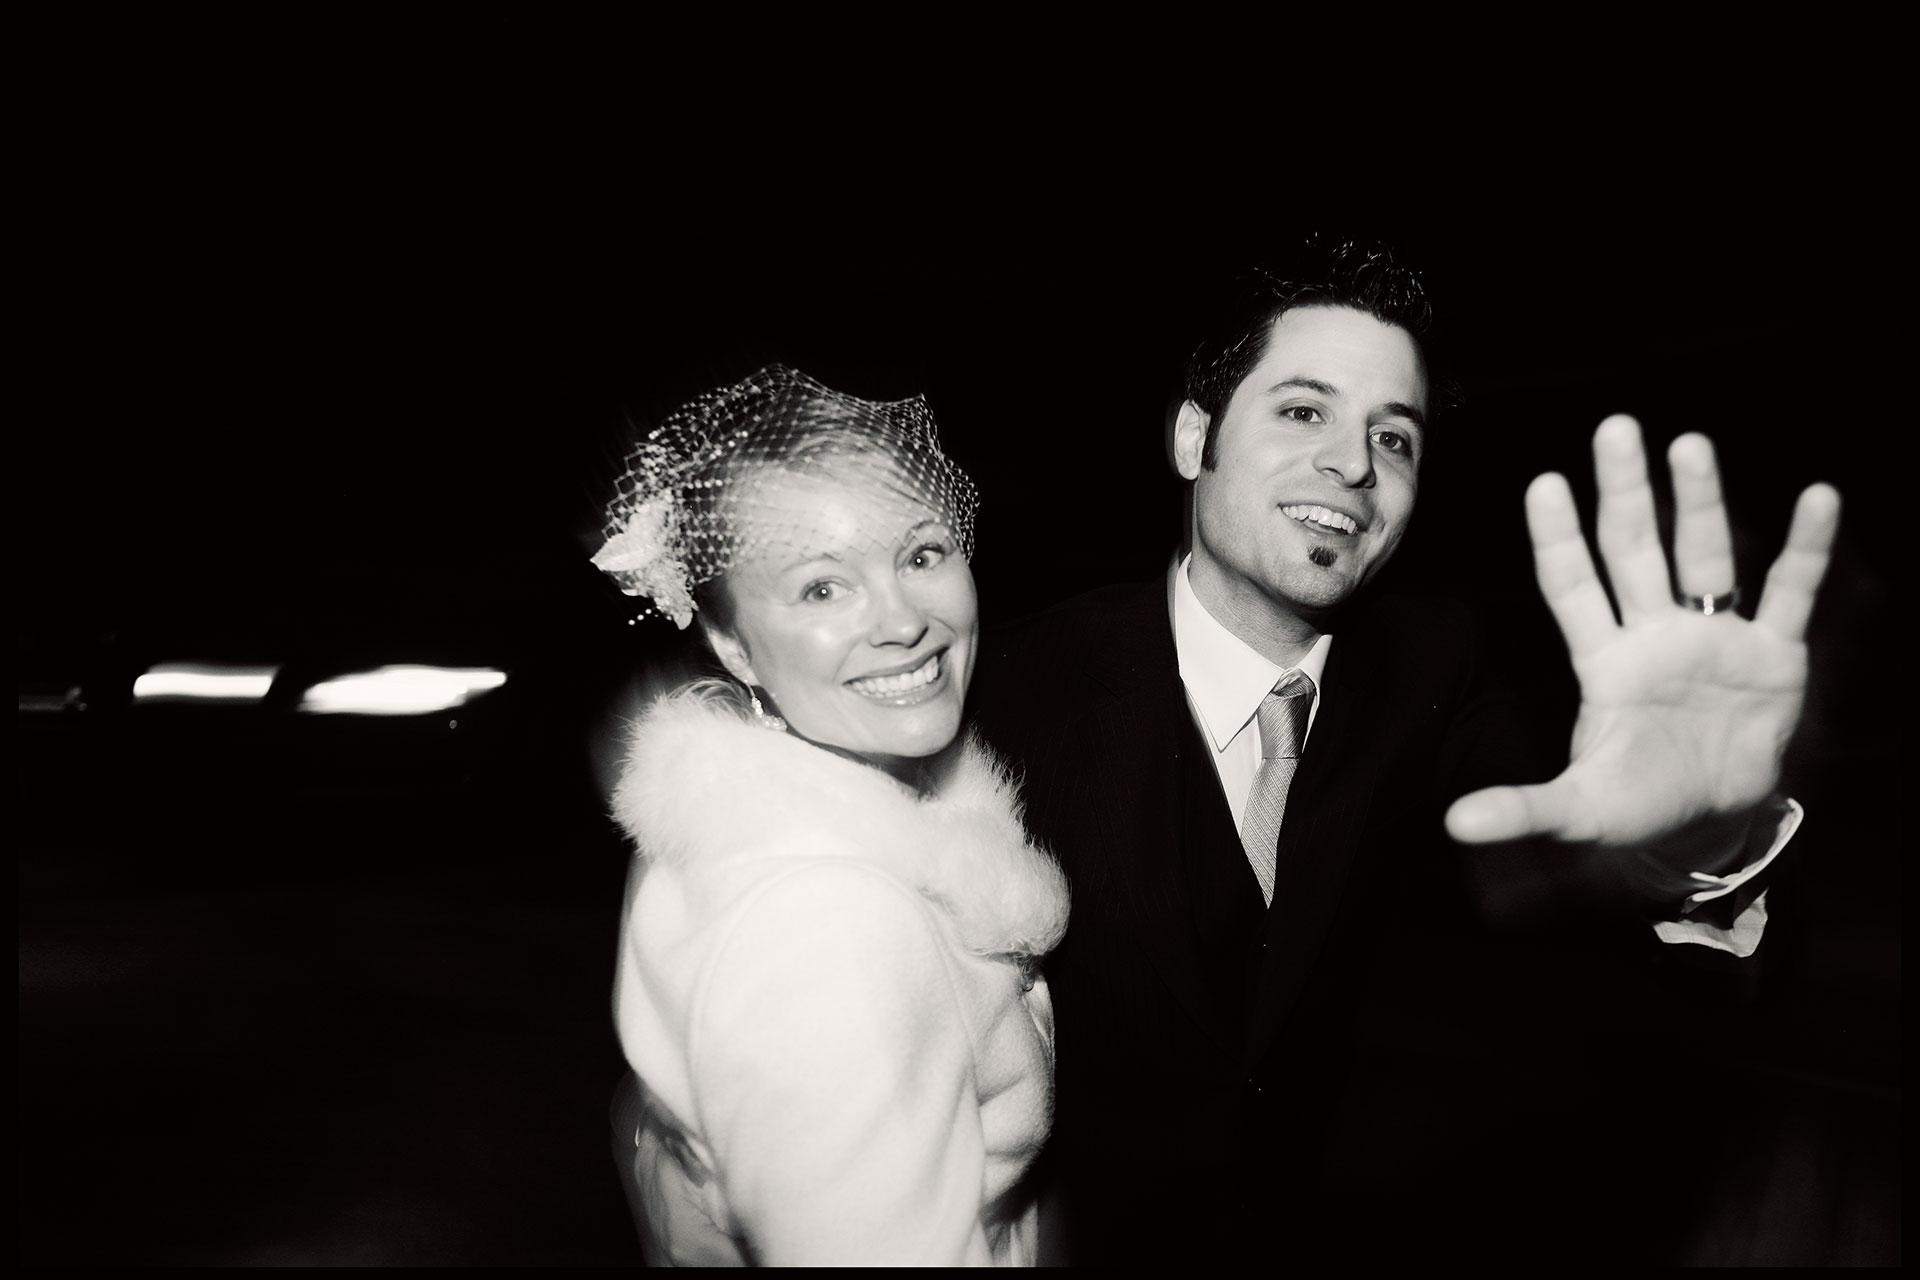 nancy_cody_wedding_bw117